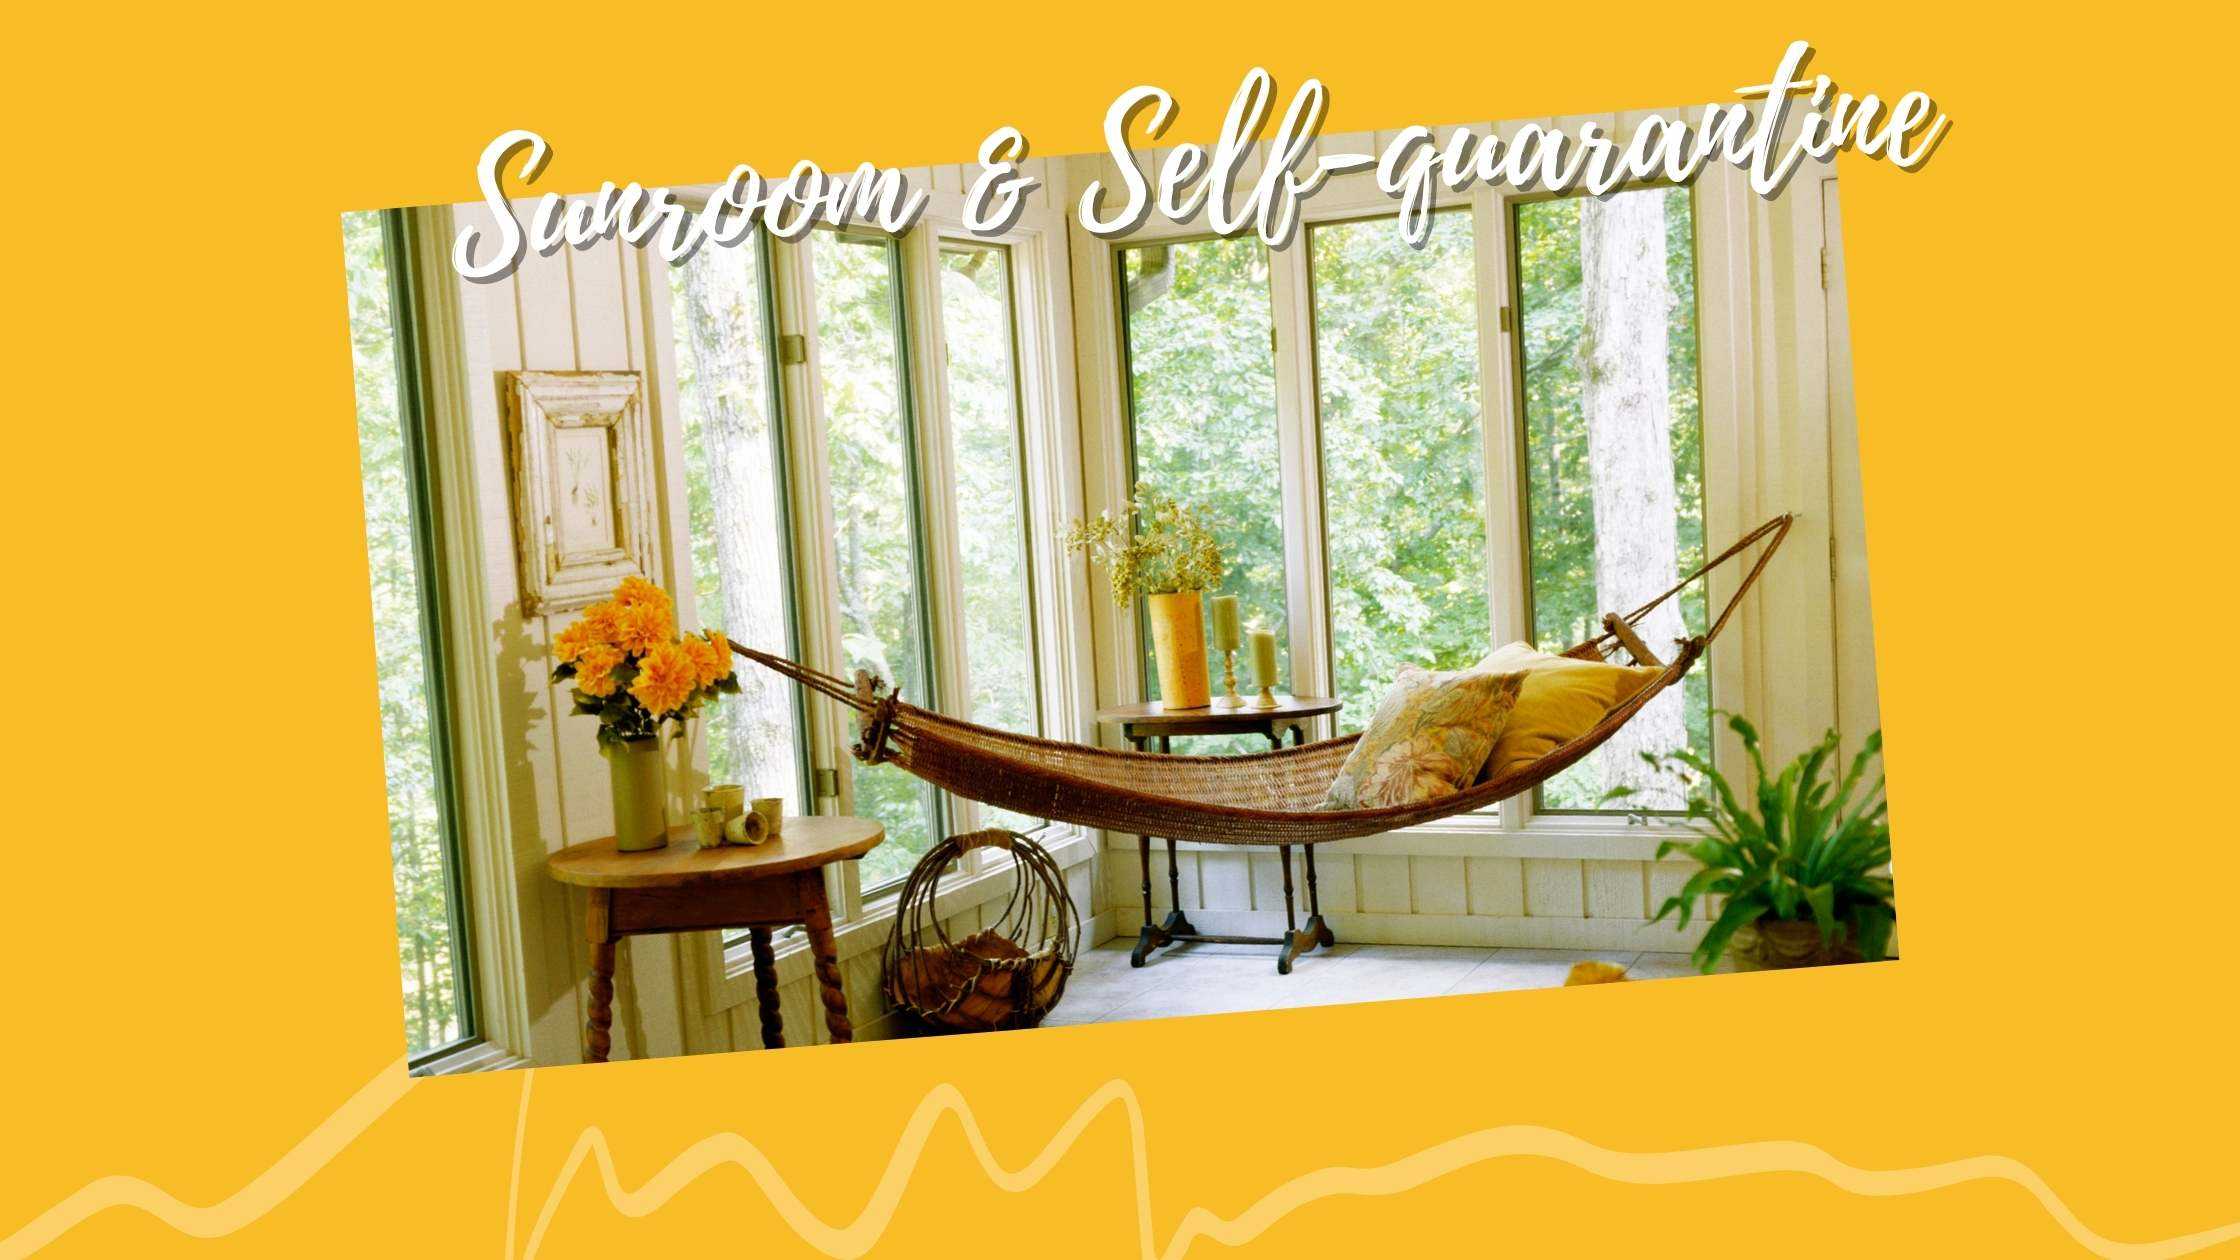 How a Sunroom Can Benefit Your Home While Self-Quarantine?